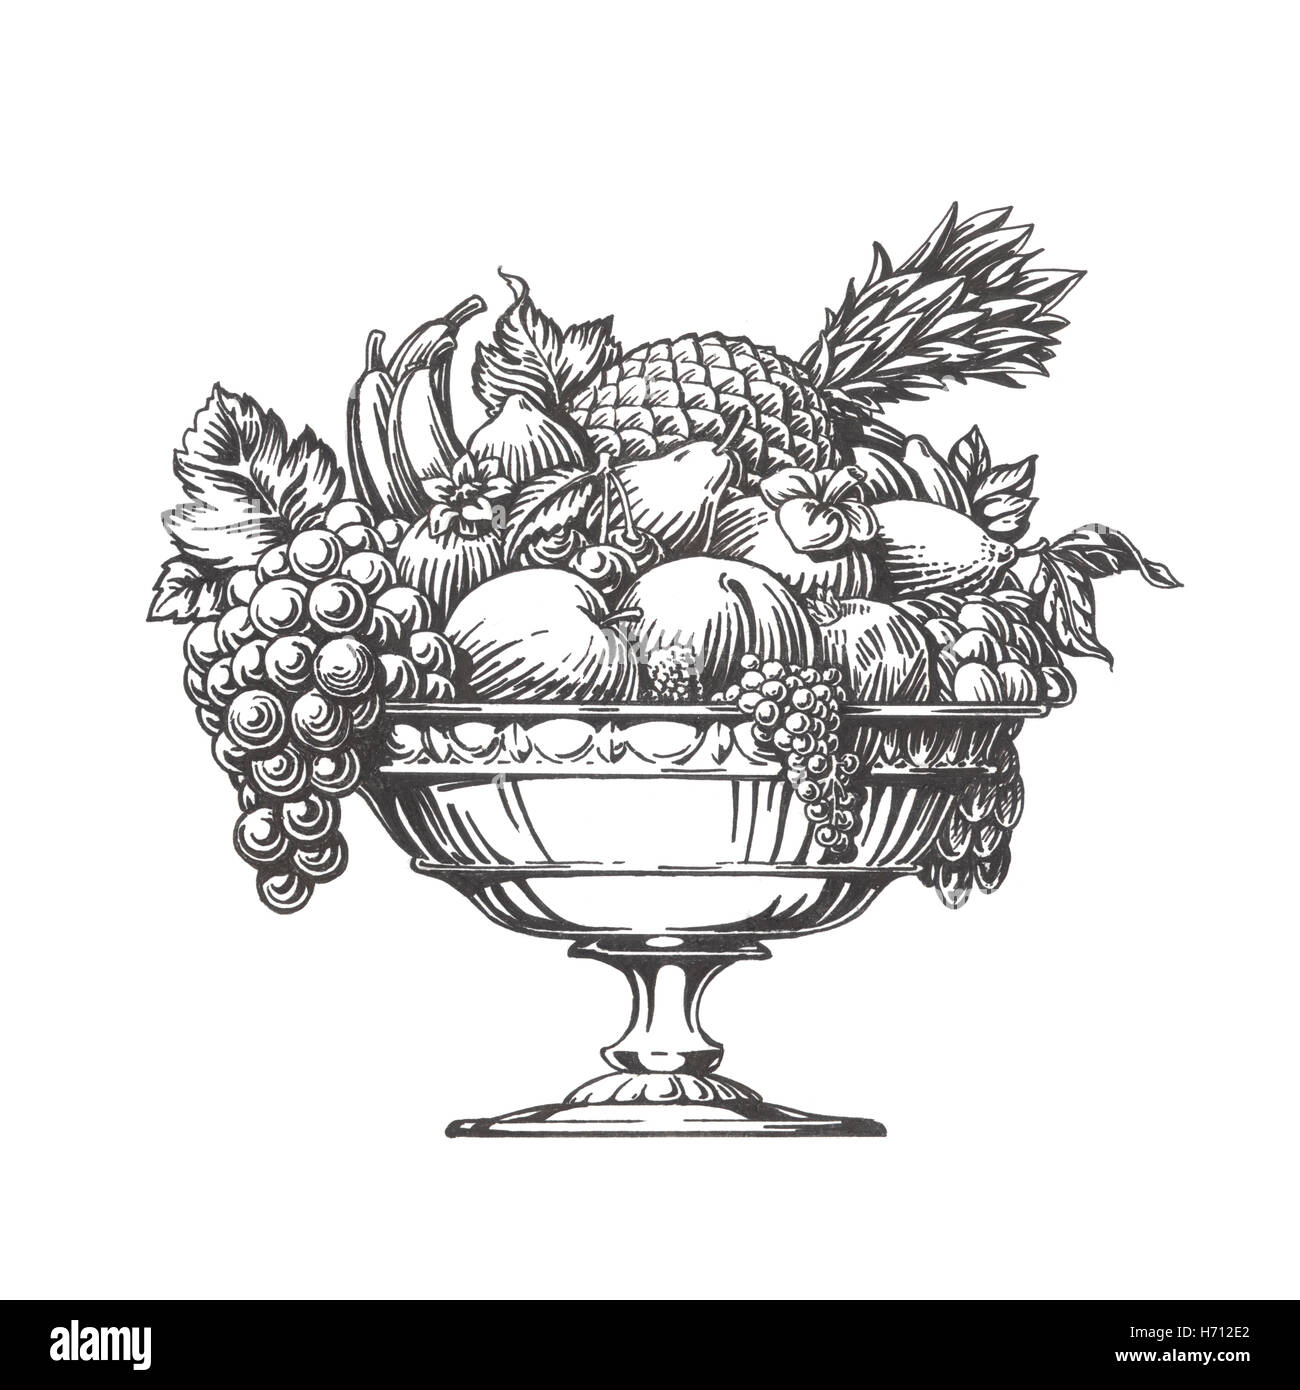 Fruit bowl coloring pictures - Stock Photo Vintage Fruit Bowl Hand Drawn Sketch Illustration